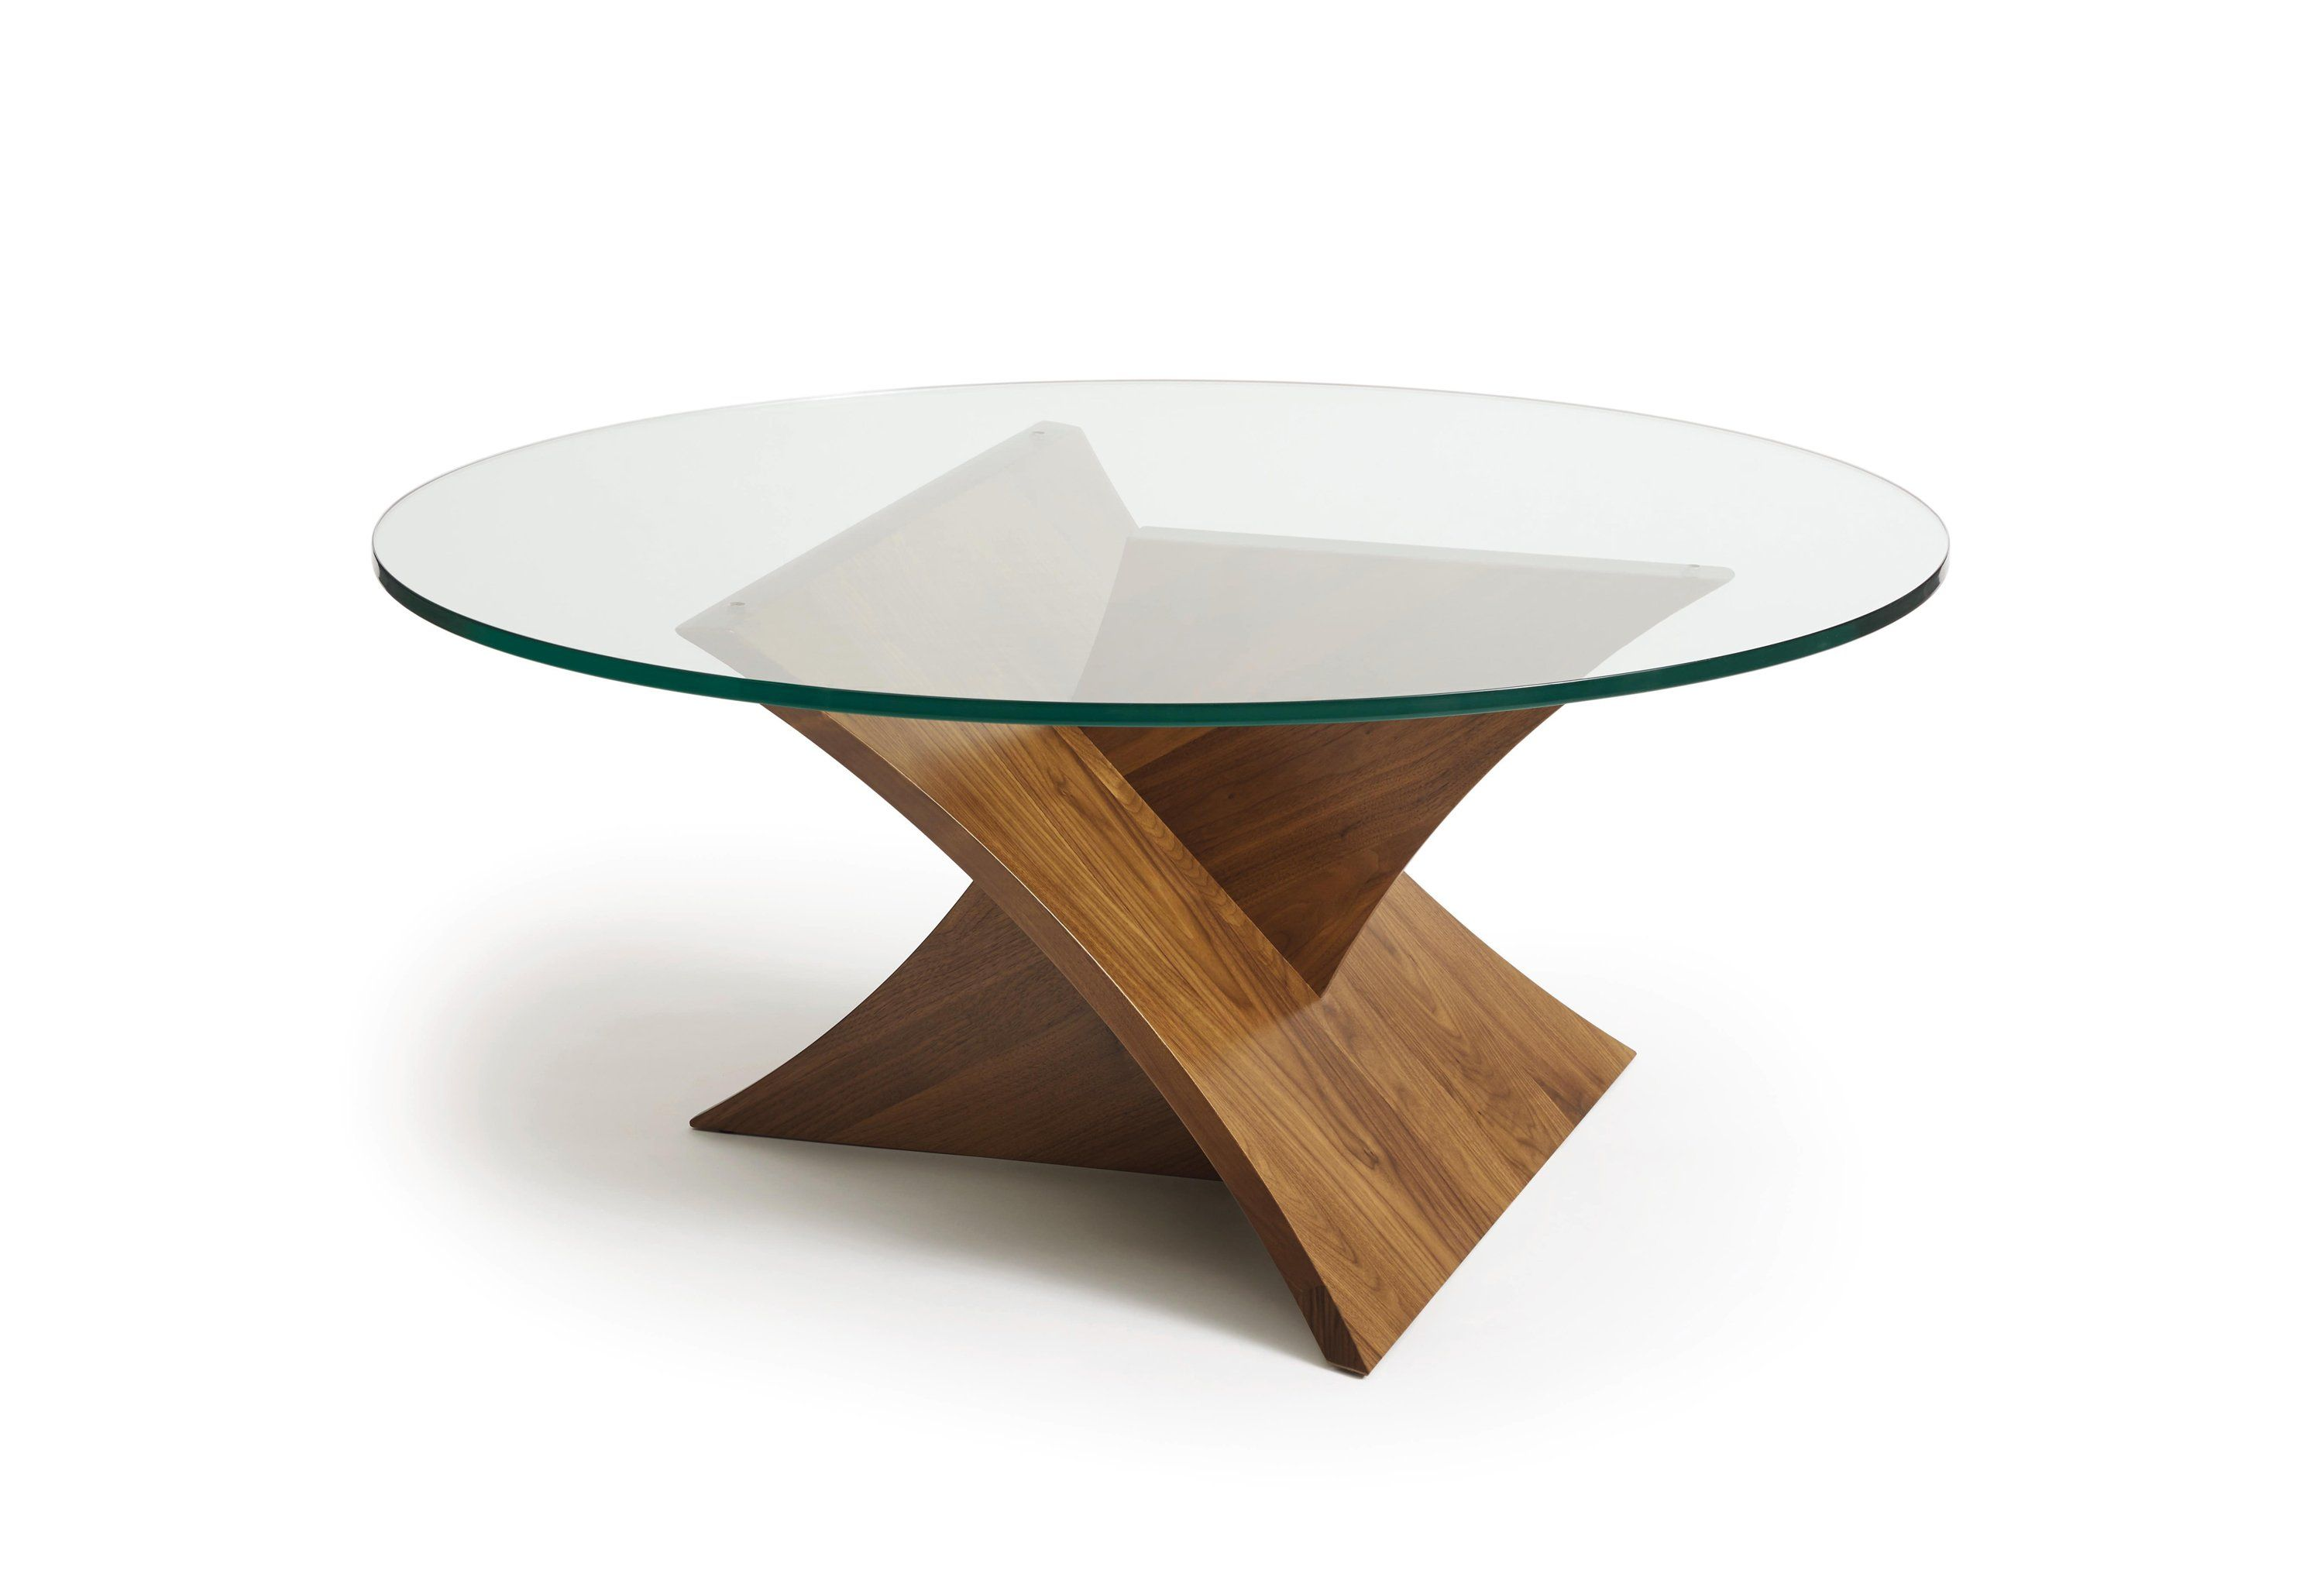 Planes Round Coffee Table Glass Top Coffee Table Coffee Table Round Coffee Table [ 2045 x 3000 Pixel ]